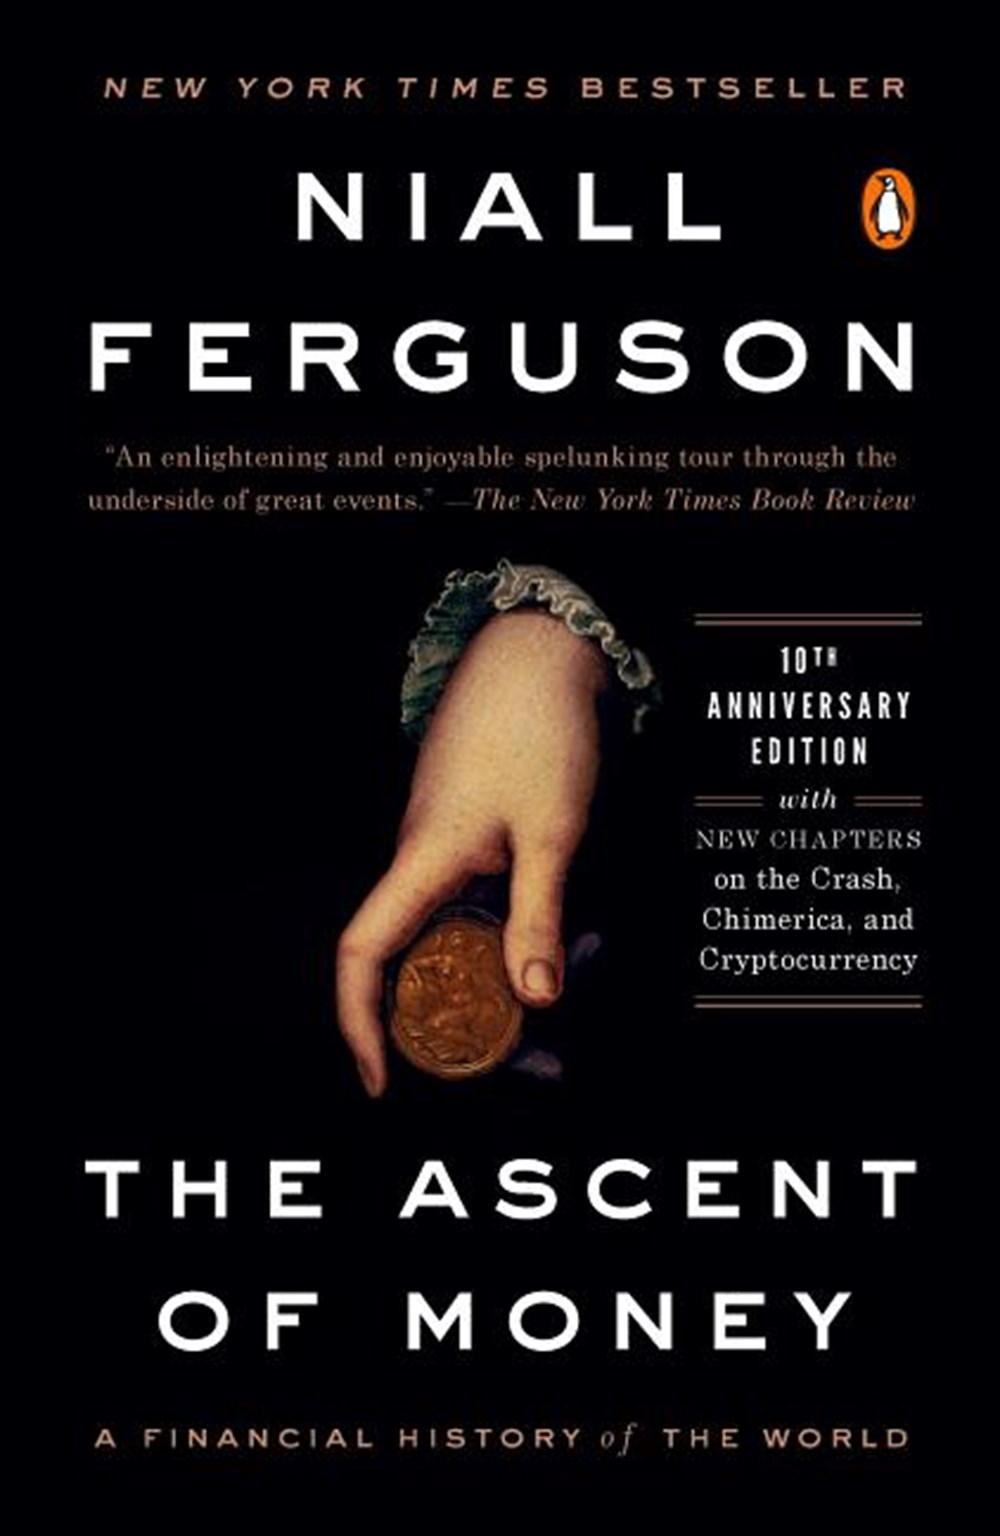 Ascent of Money A Financial History of the World: 10th Anniversary Edition